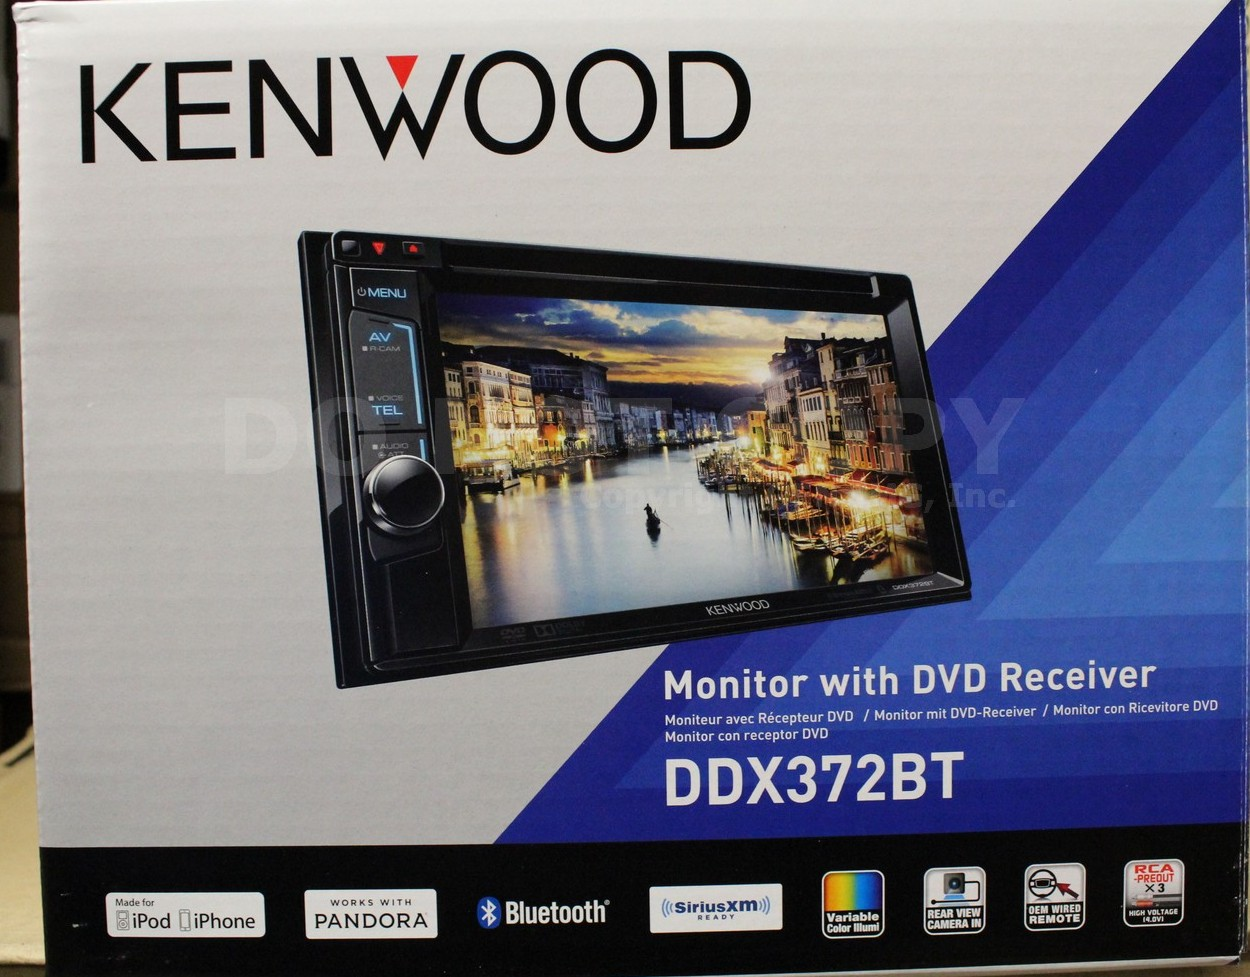 new kenwood ddx372bt double din dvd bluetooth car stereo. Black Bedroom Furniture Sets. Home Design Ideas